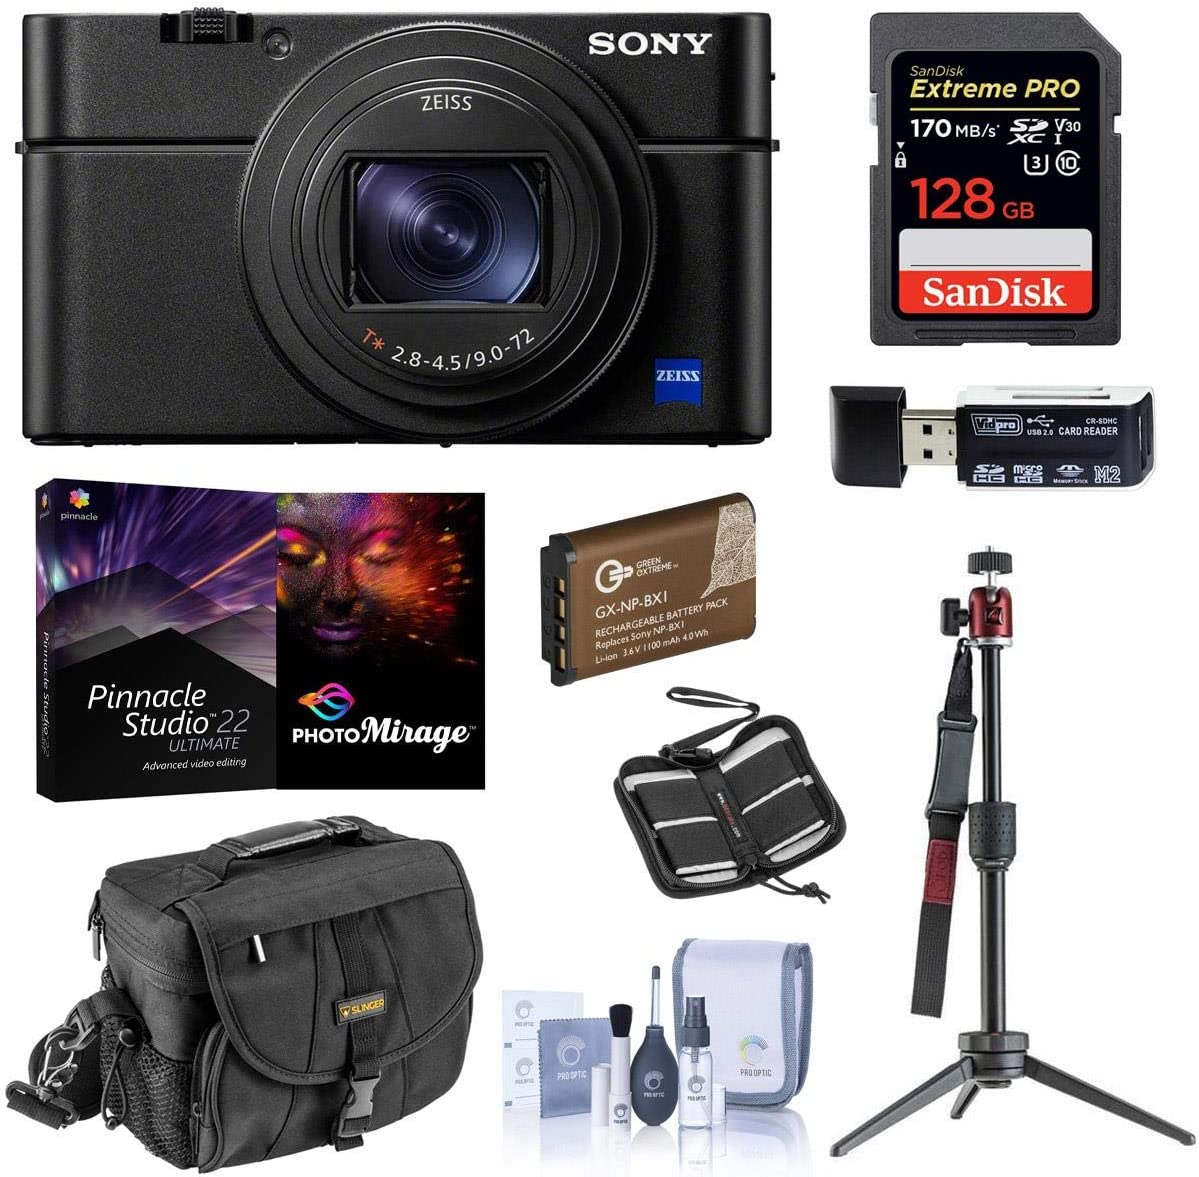 Sony Cyber-Shot DSC-RX100 VII Digital Camera - Bundle with 128GB SDXC U3 Card, Table top Tripod, Camera Case, Spare Battery, Memory Wallet, Cleaning Kit, Card Reader, Pro PC Software Package